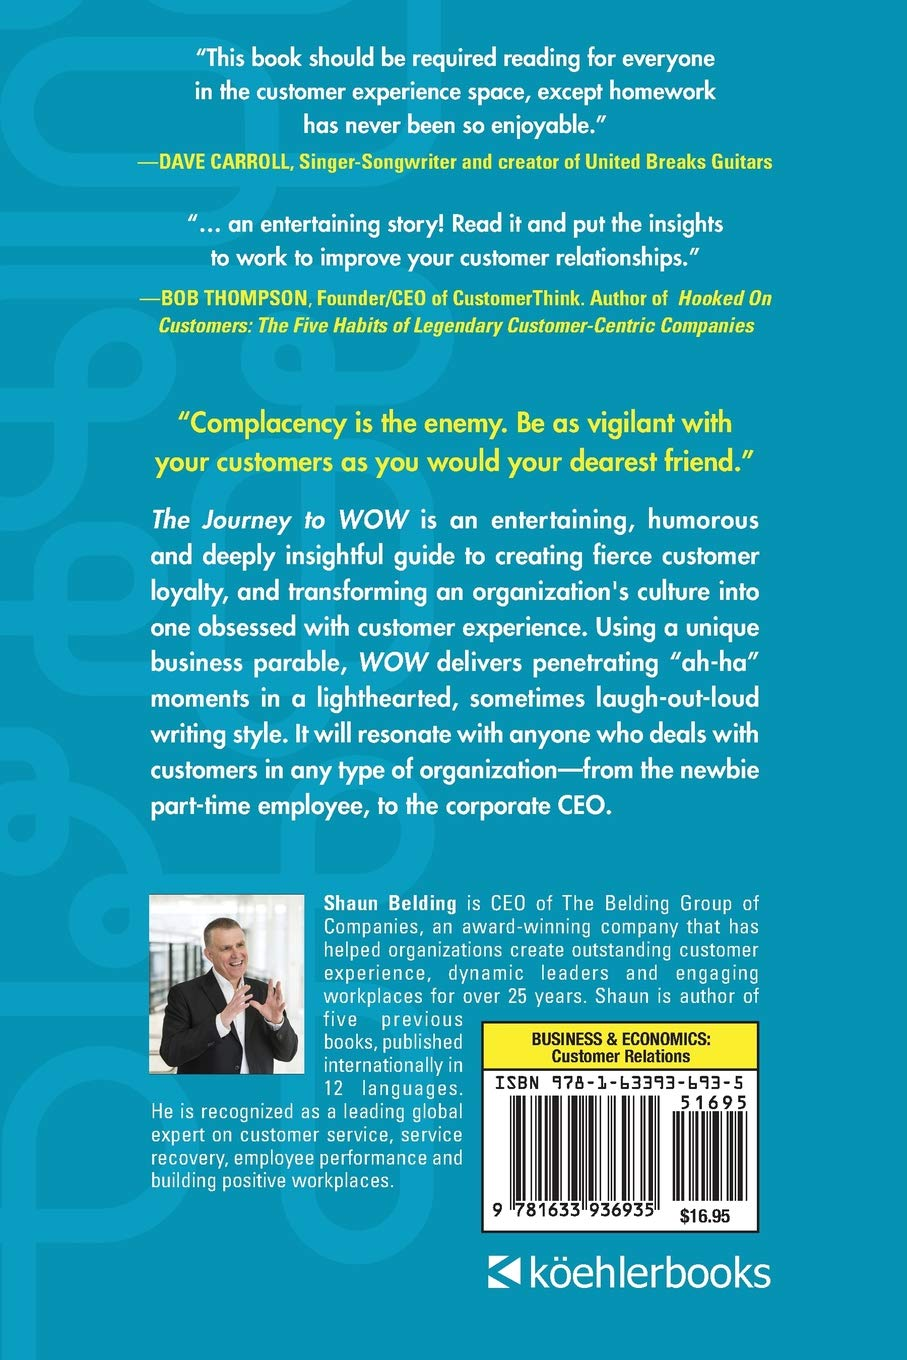 The Journey to WOW: The Path to Outstanding Customer